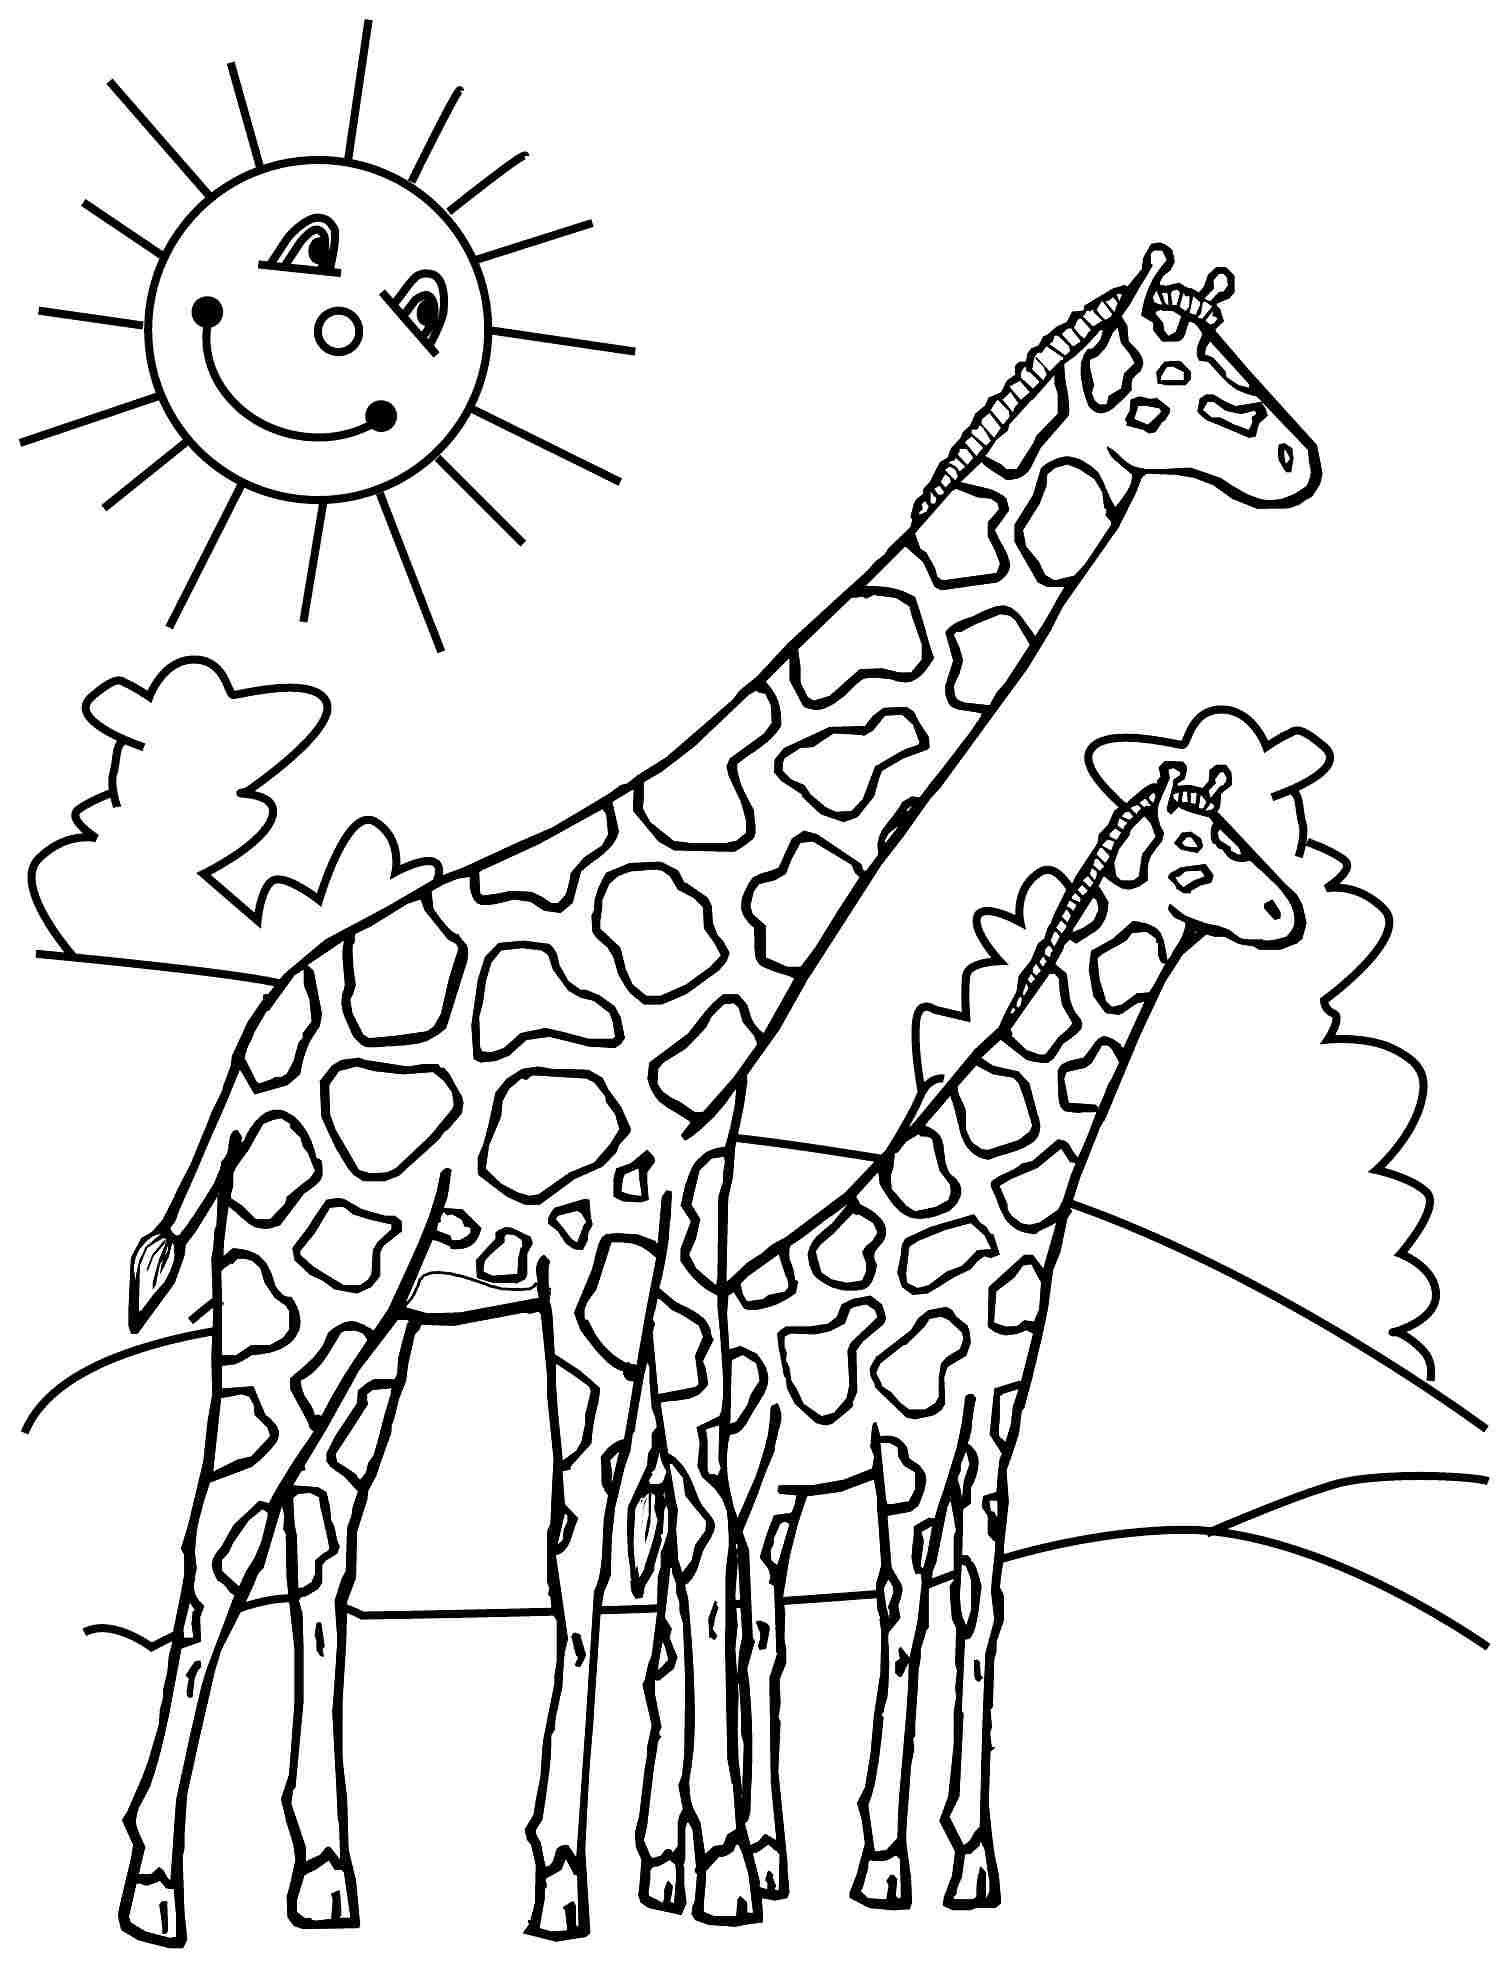 coloring pages free cute coloring pages best coloring pages for kids coloring pages free